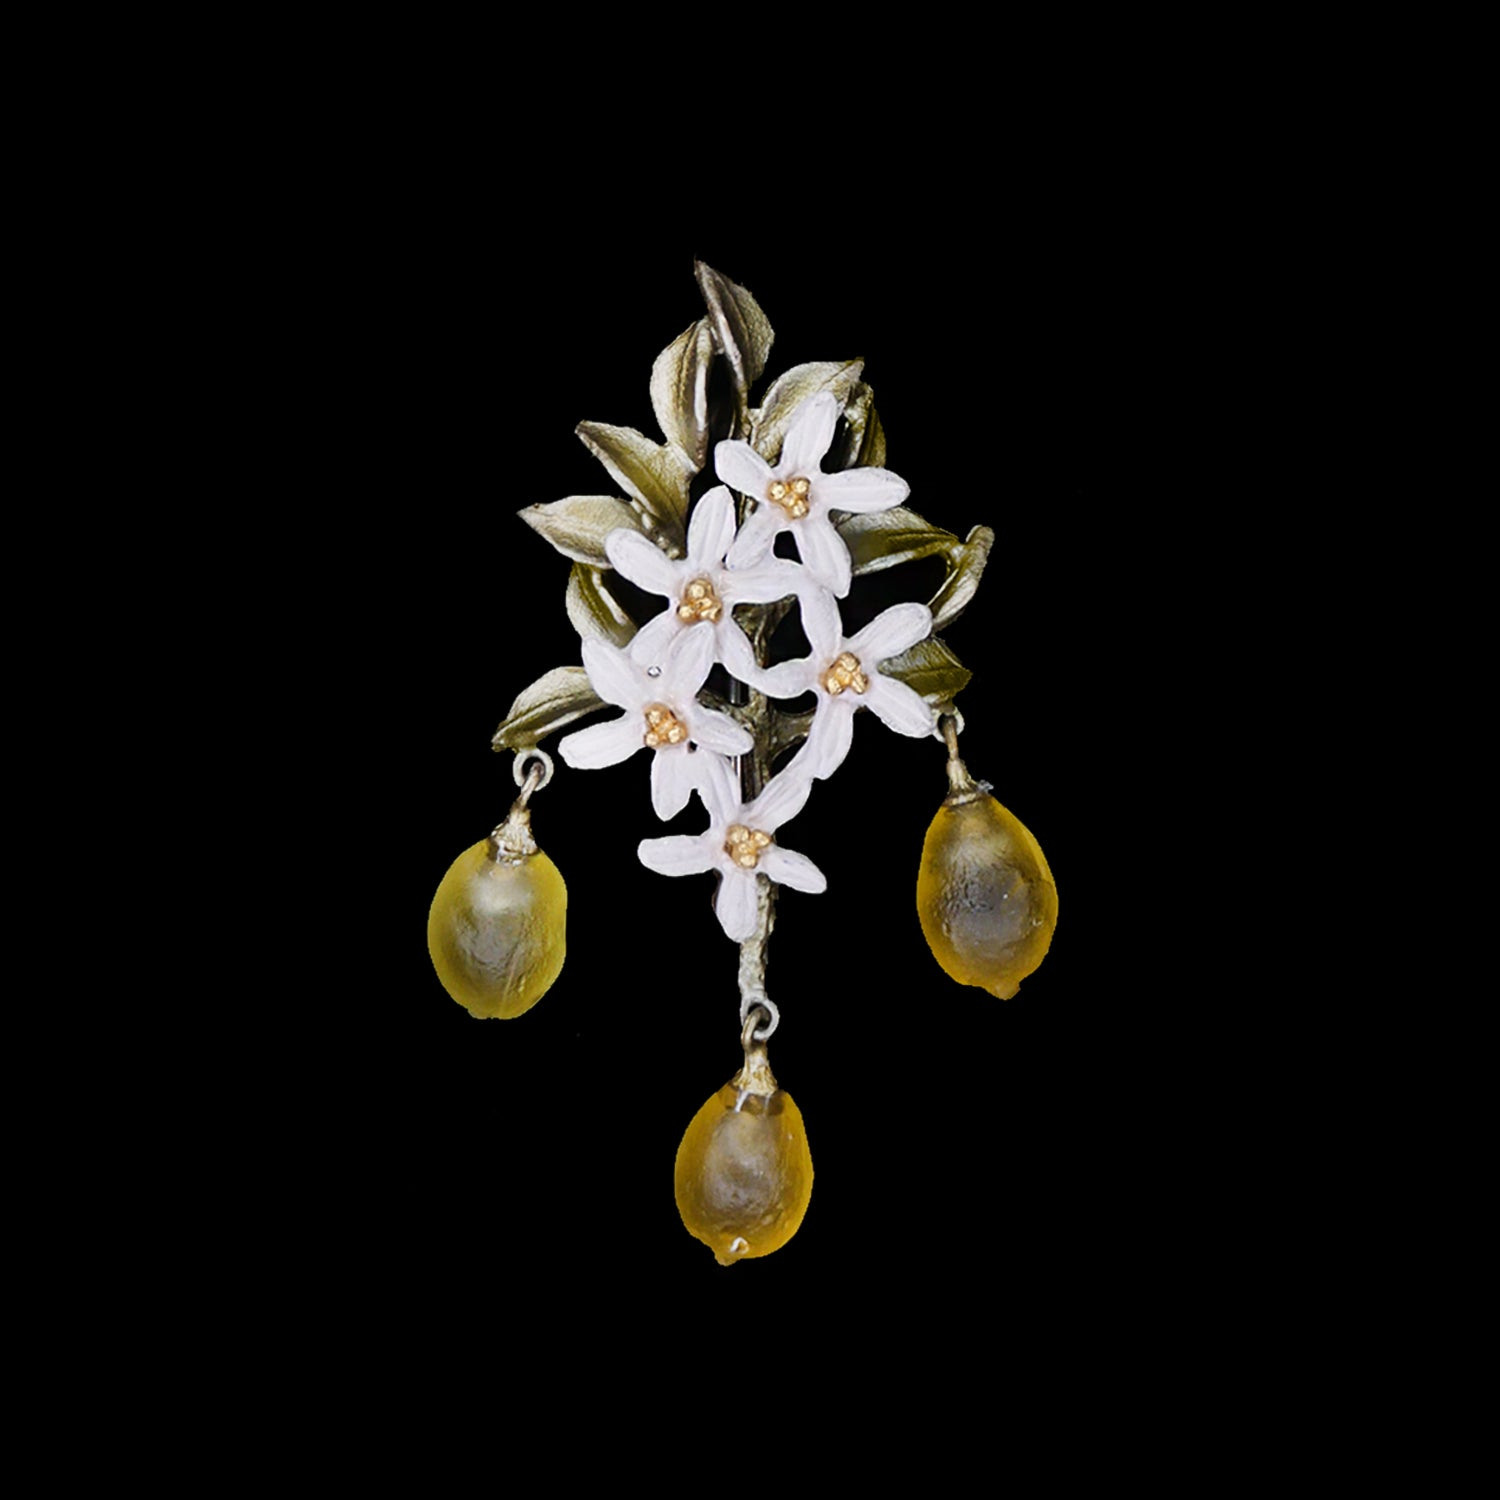 Lemon Drop Pendant Brooch